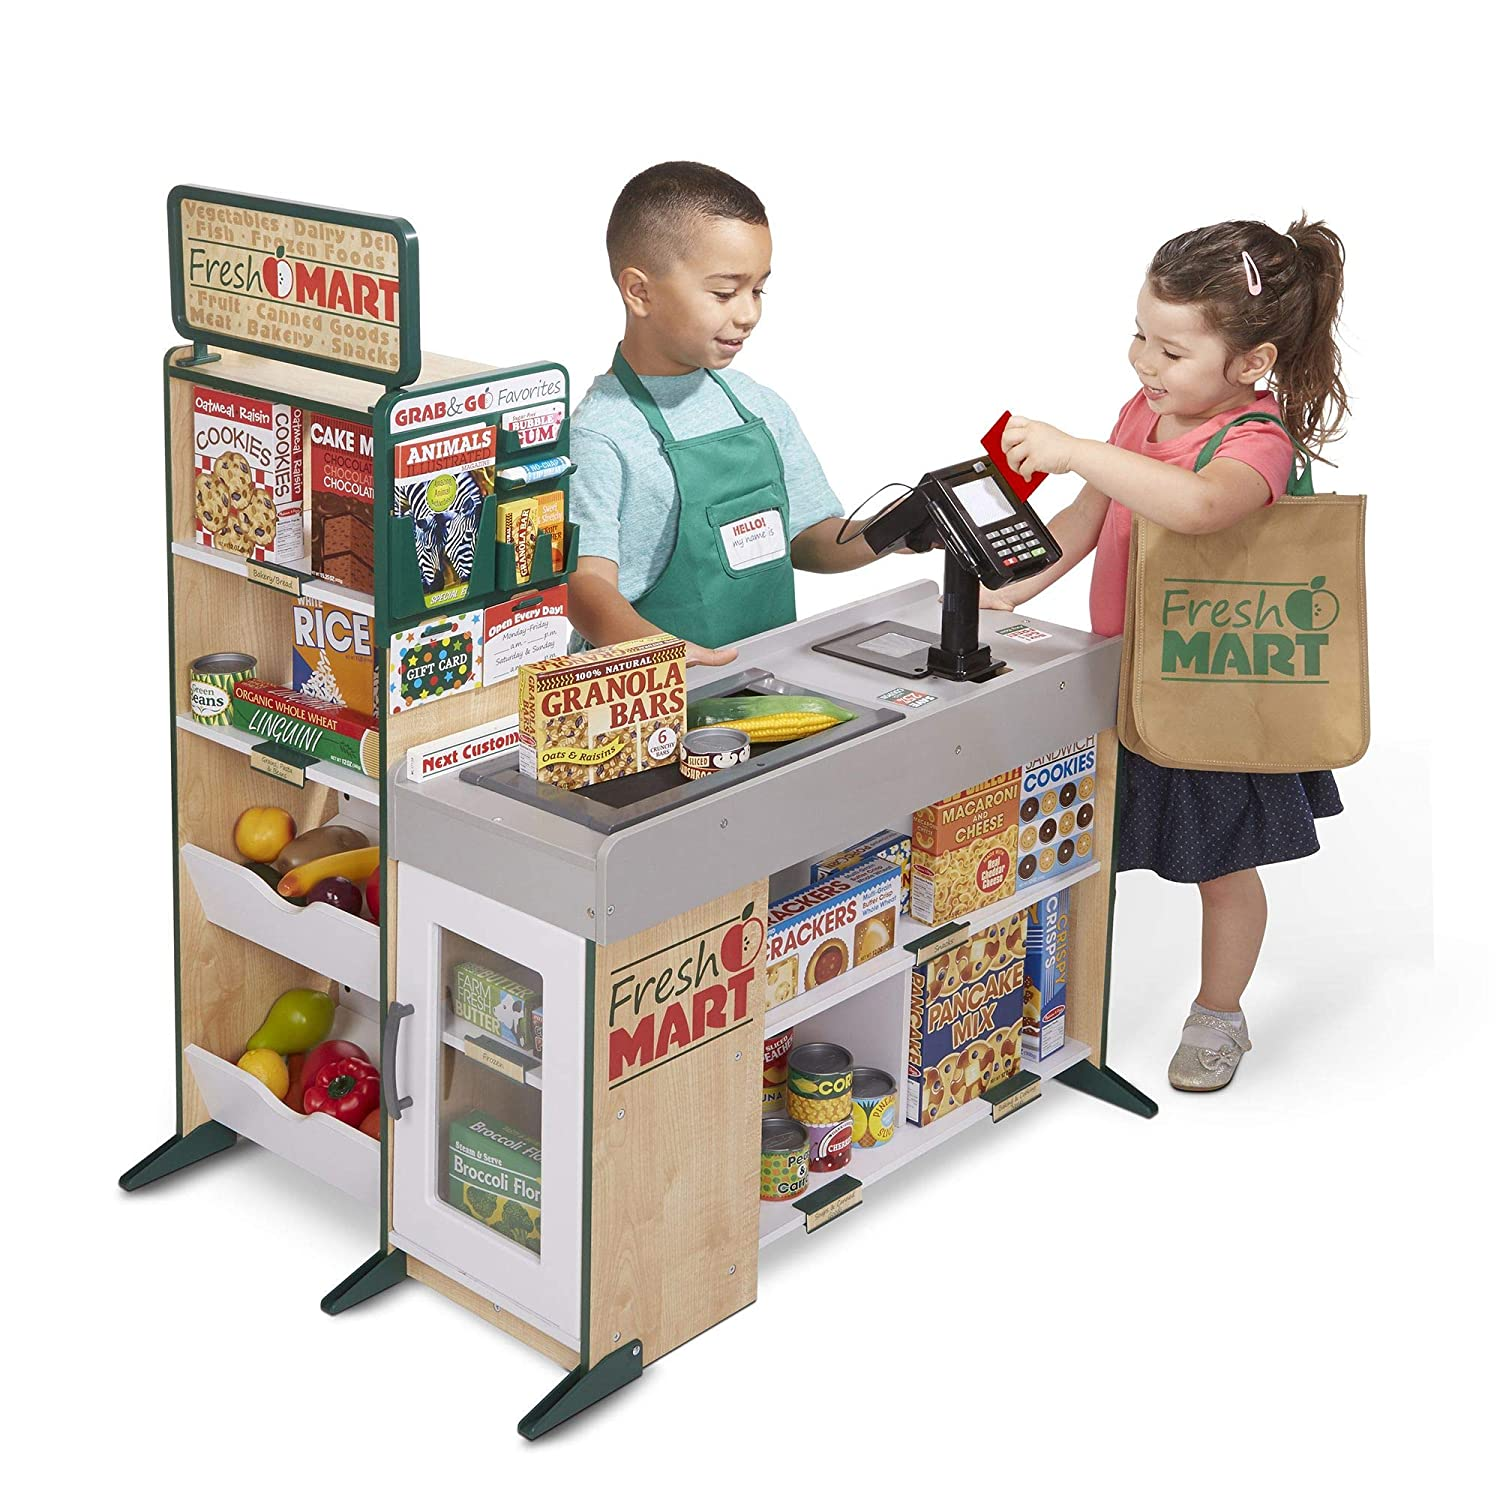 Amazon.com: Melissa & Doug 15183 Food And Role Play (84 Pcs) Fresh Mart Grocery Store Companion Set,: Toys & Games